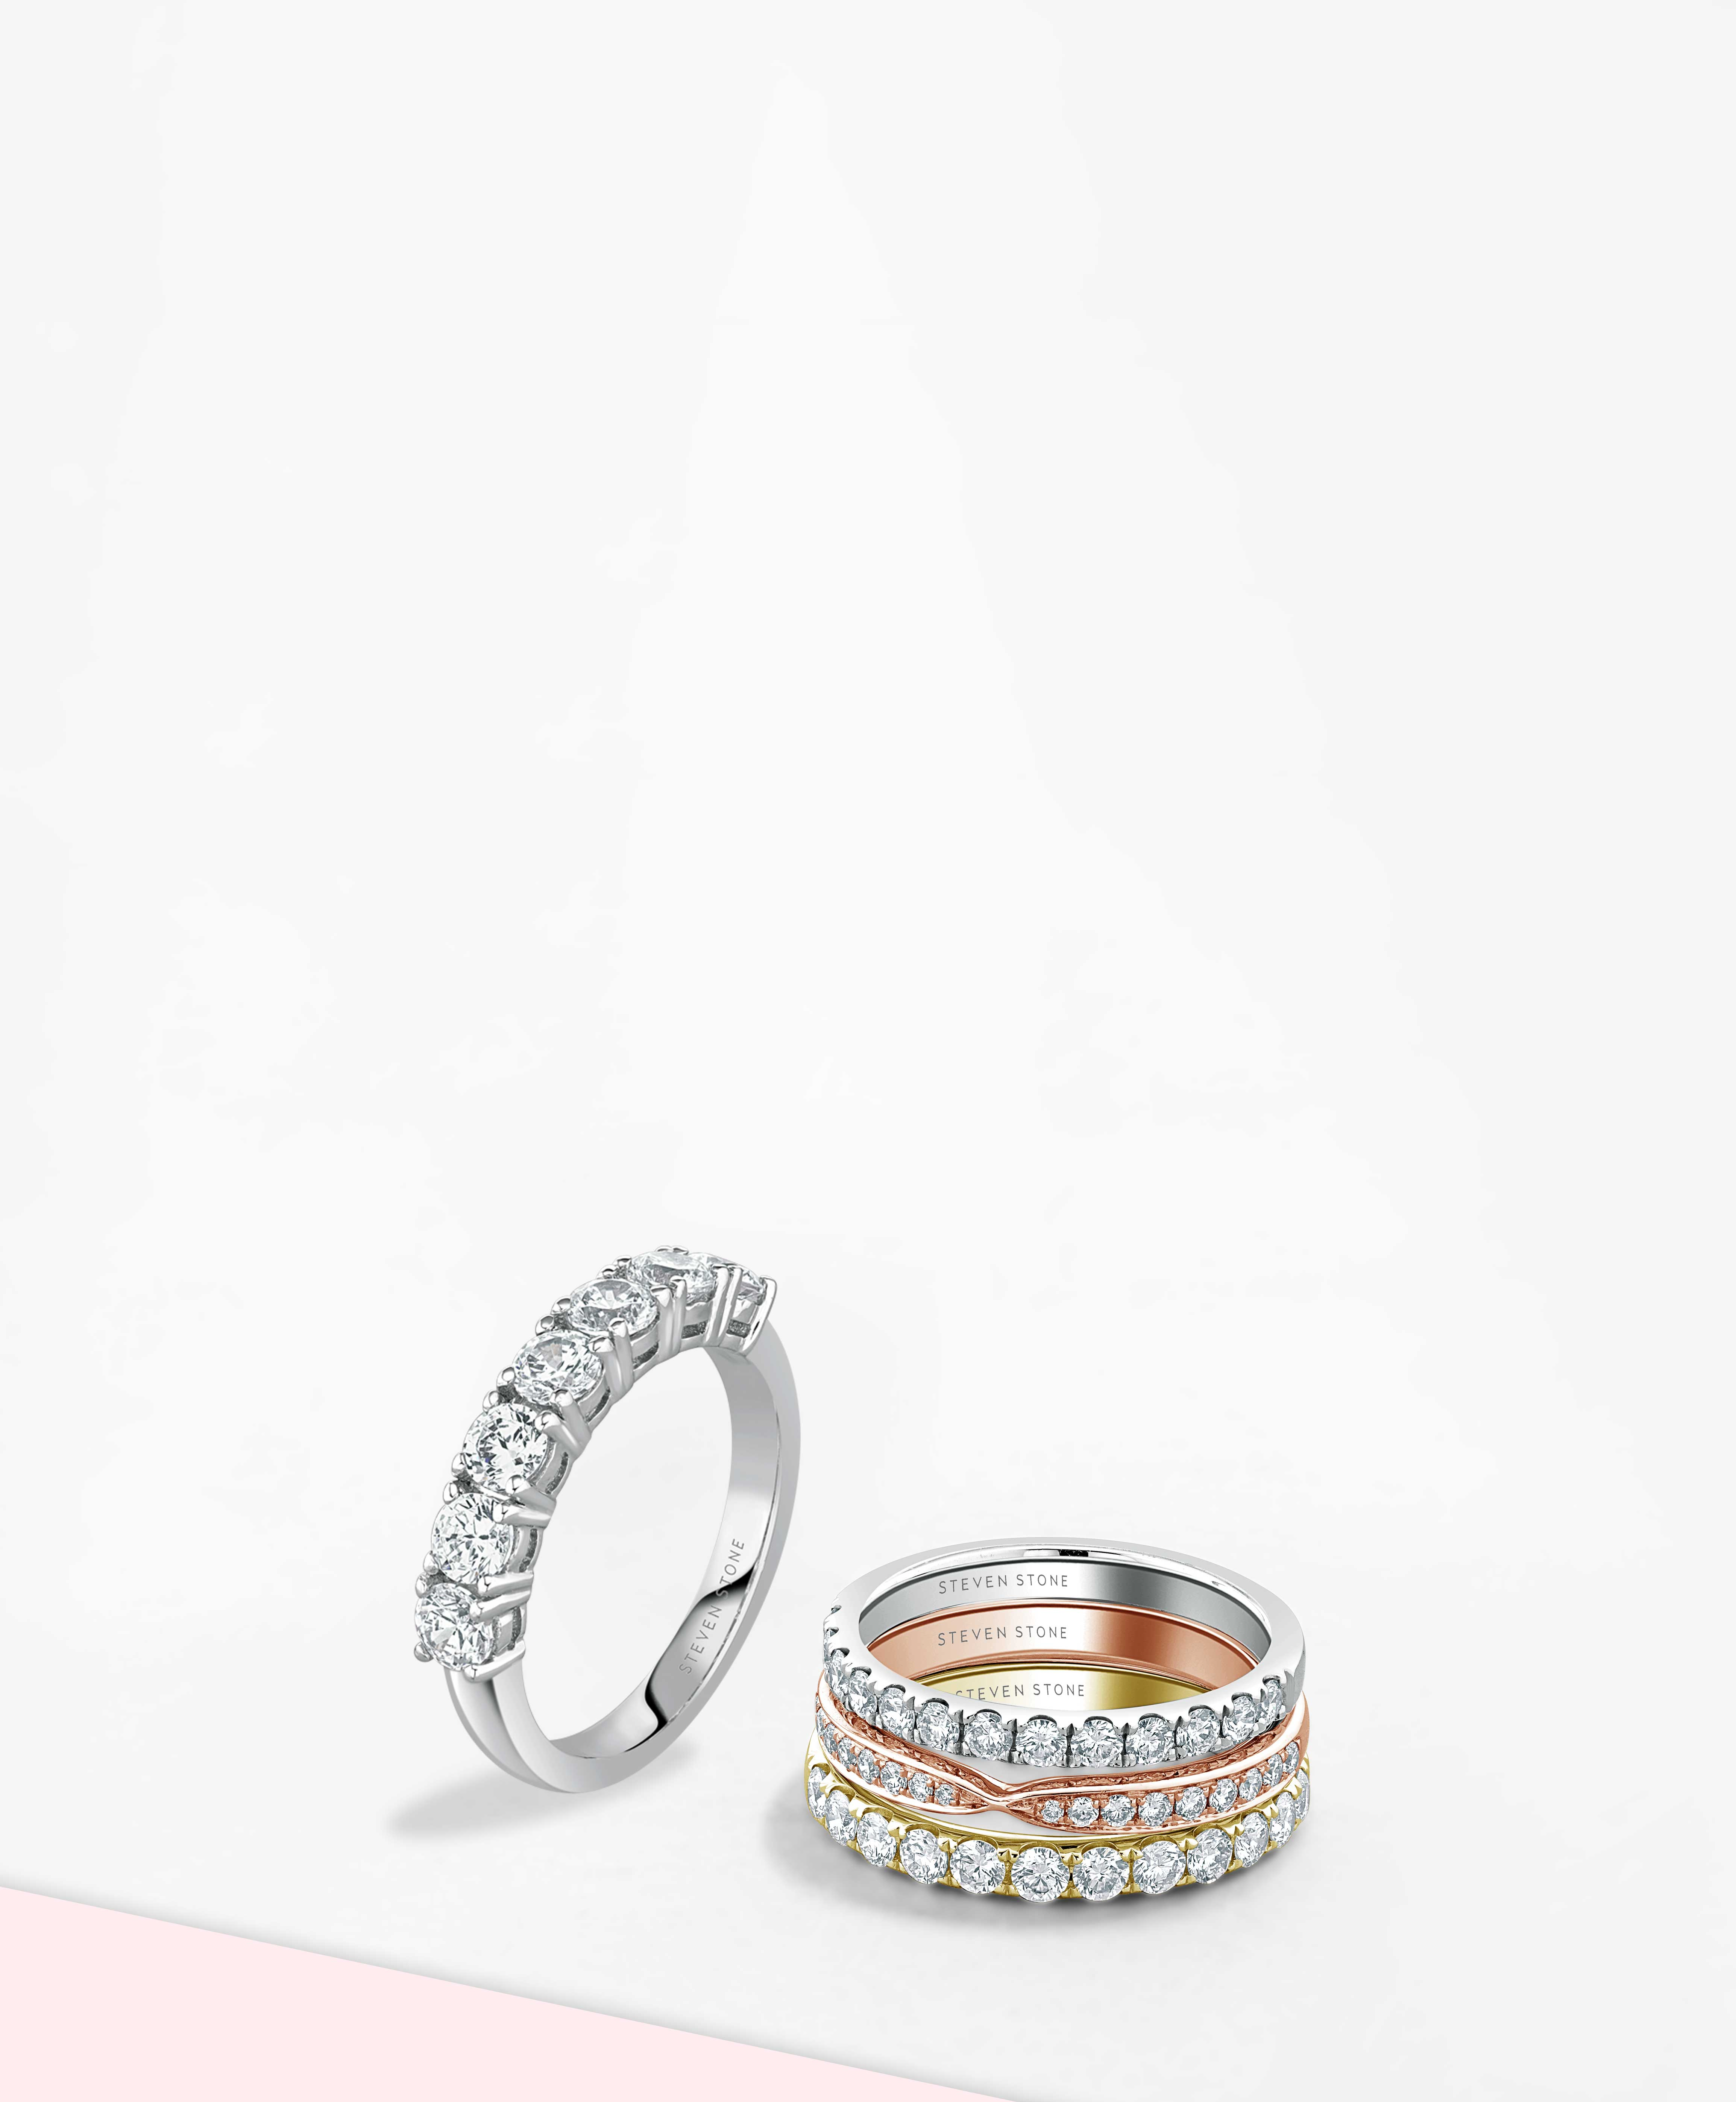 Platinum Eternity Rings - Steven Stone